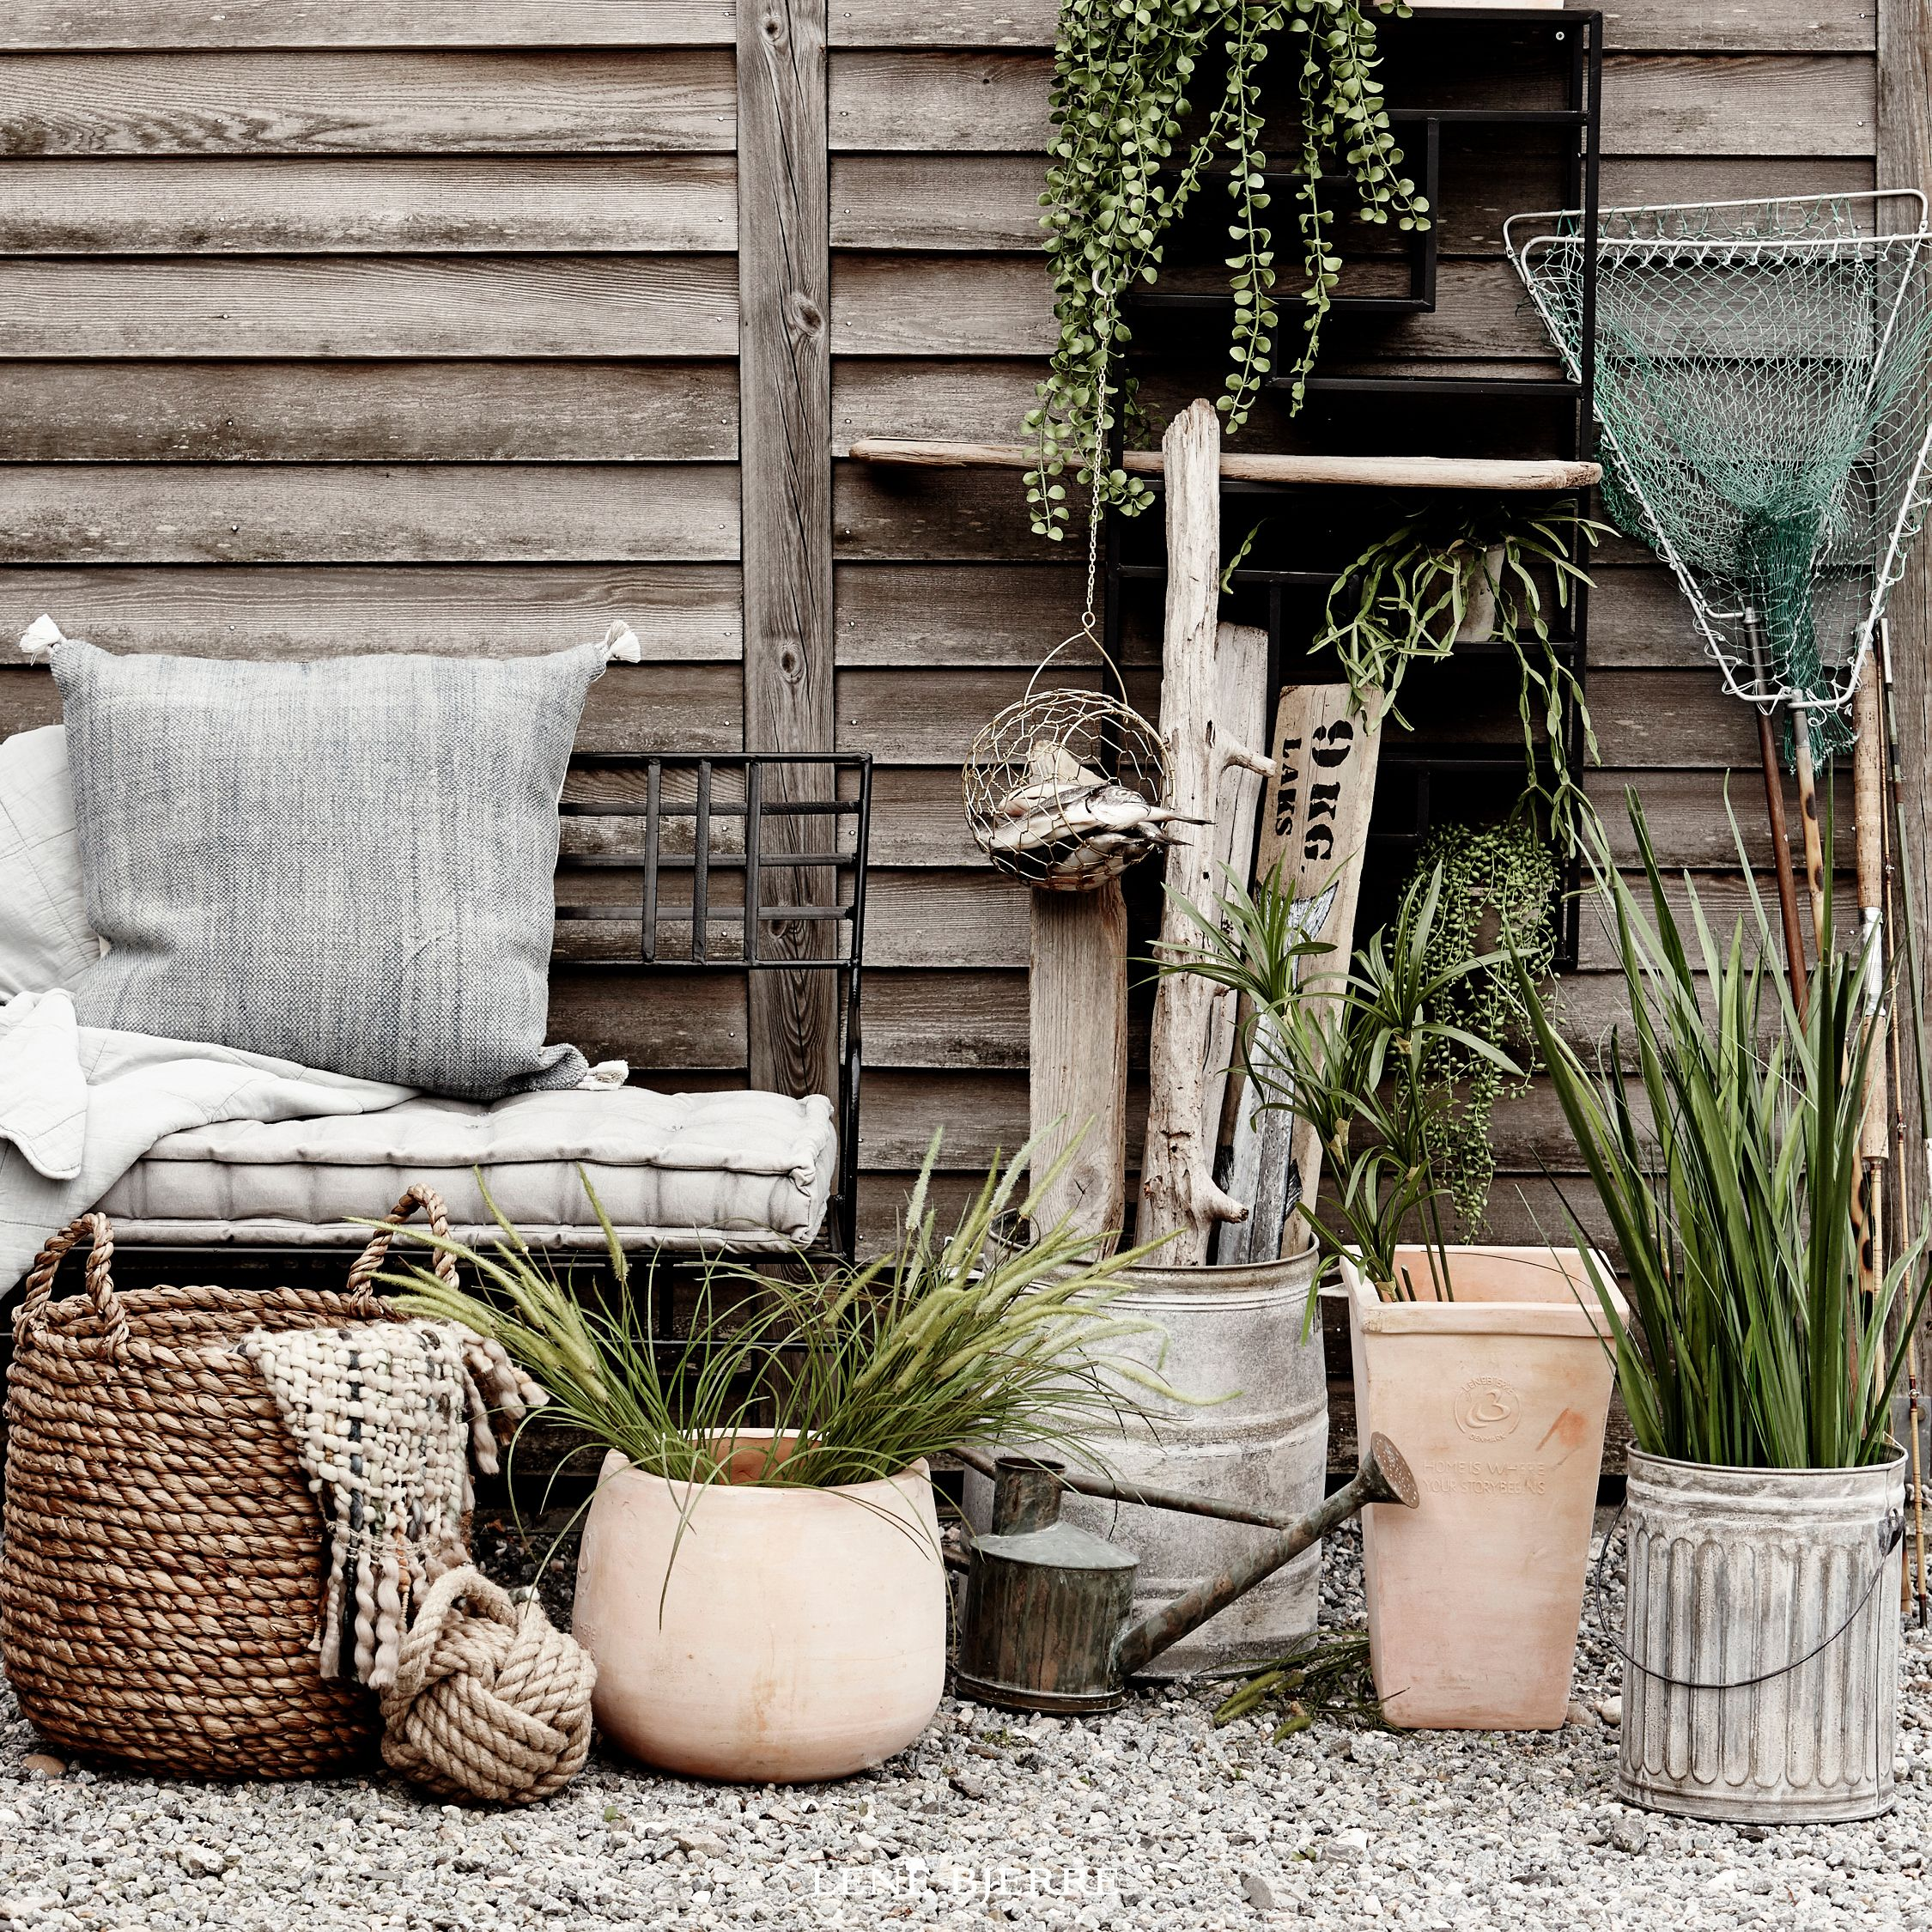 Outdoor flower pots from the Lene Bjerre spring/summer Collection. SS17.